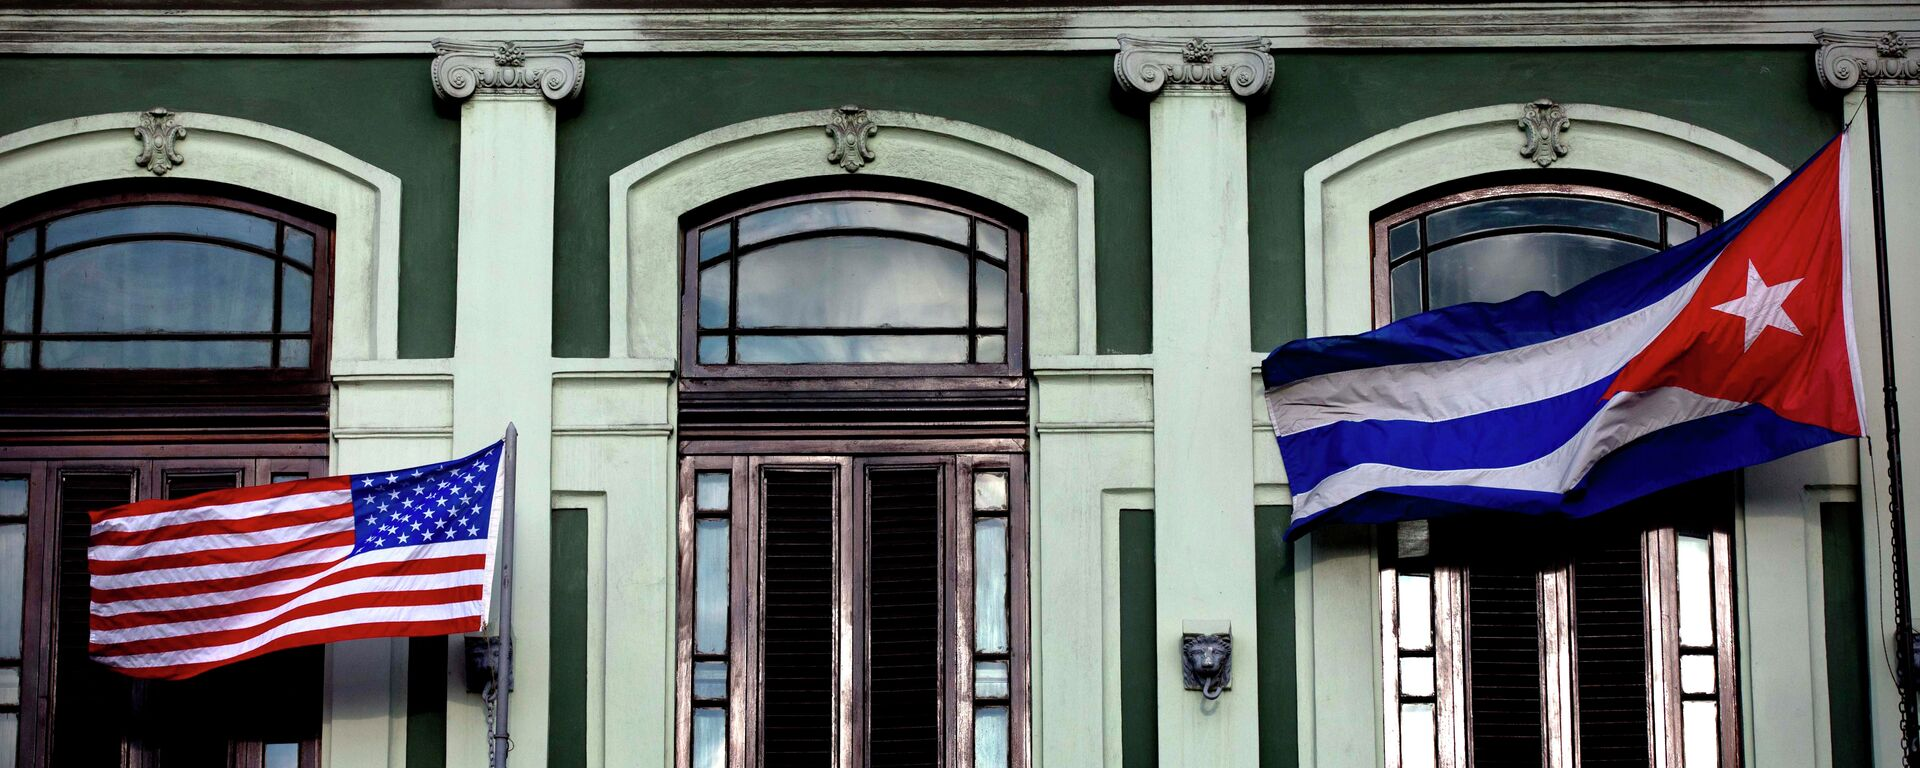 A Cuban and US flag wave from the balcony of the Hotel Saratoga in Havana - Sputnik Mundo, 1920, 28.01.2021